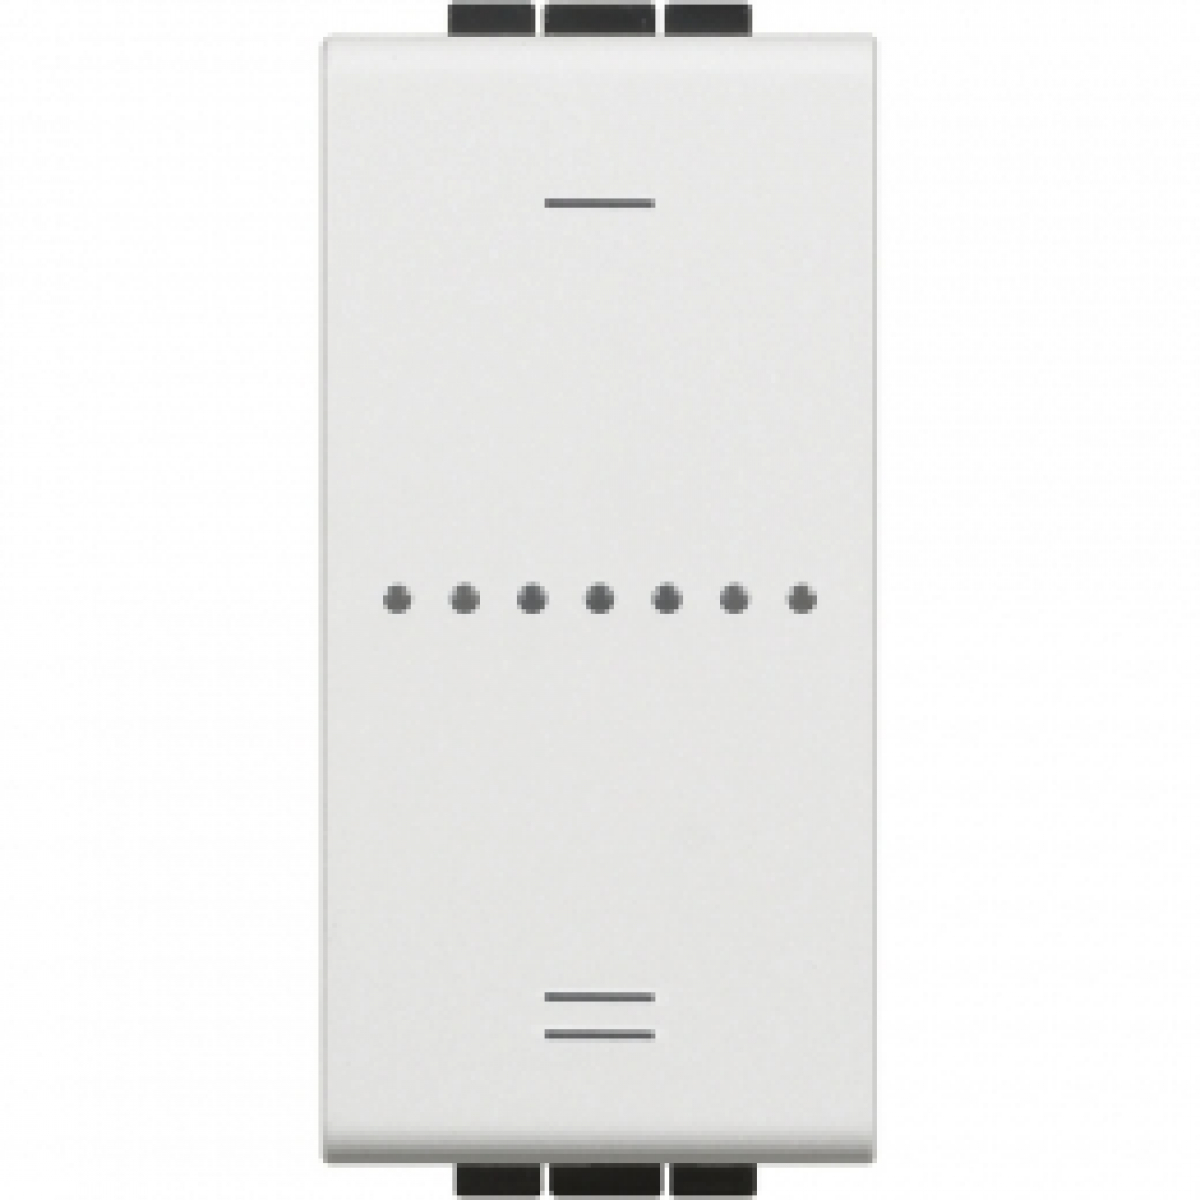 Interruttore dimmer Connesso Bticino Living Light N4411C